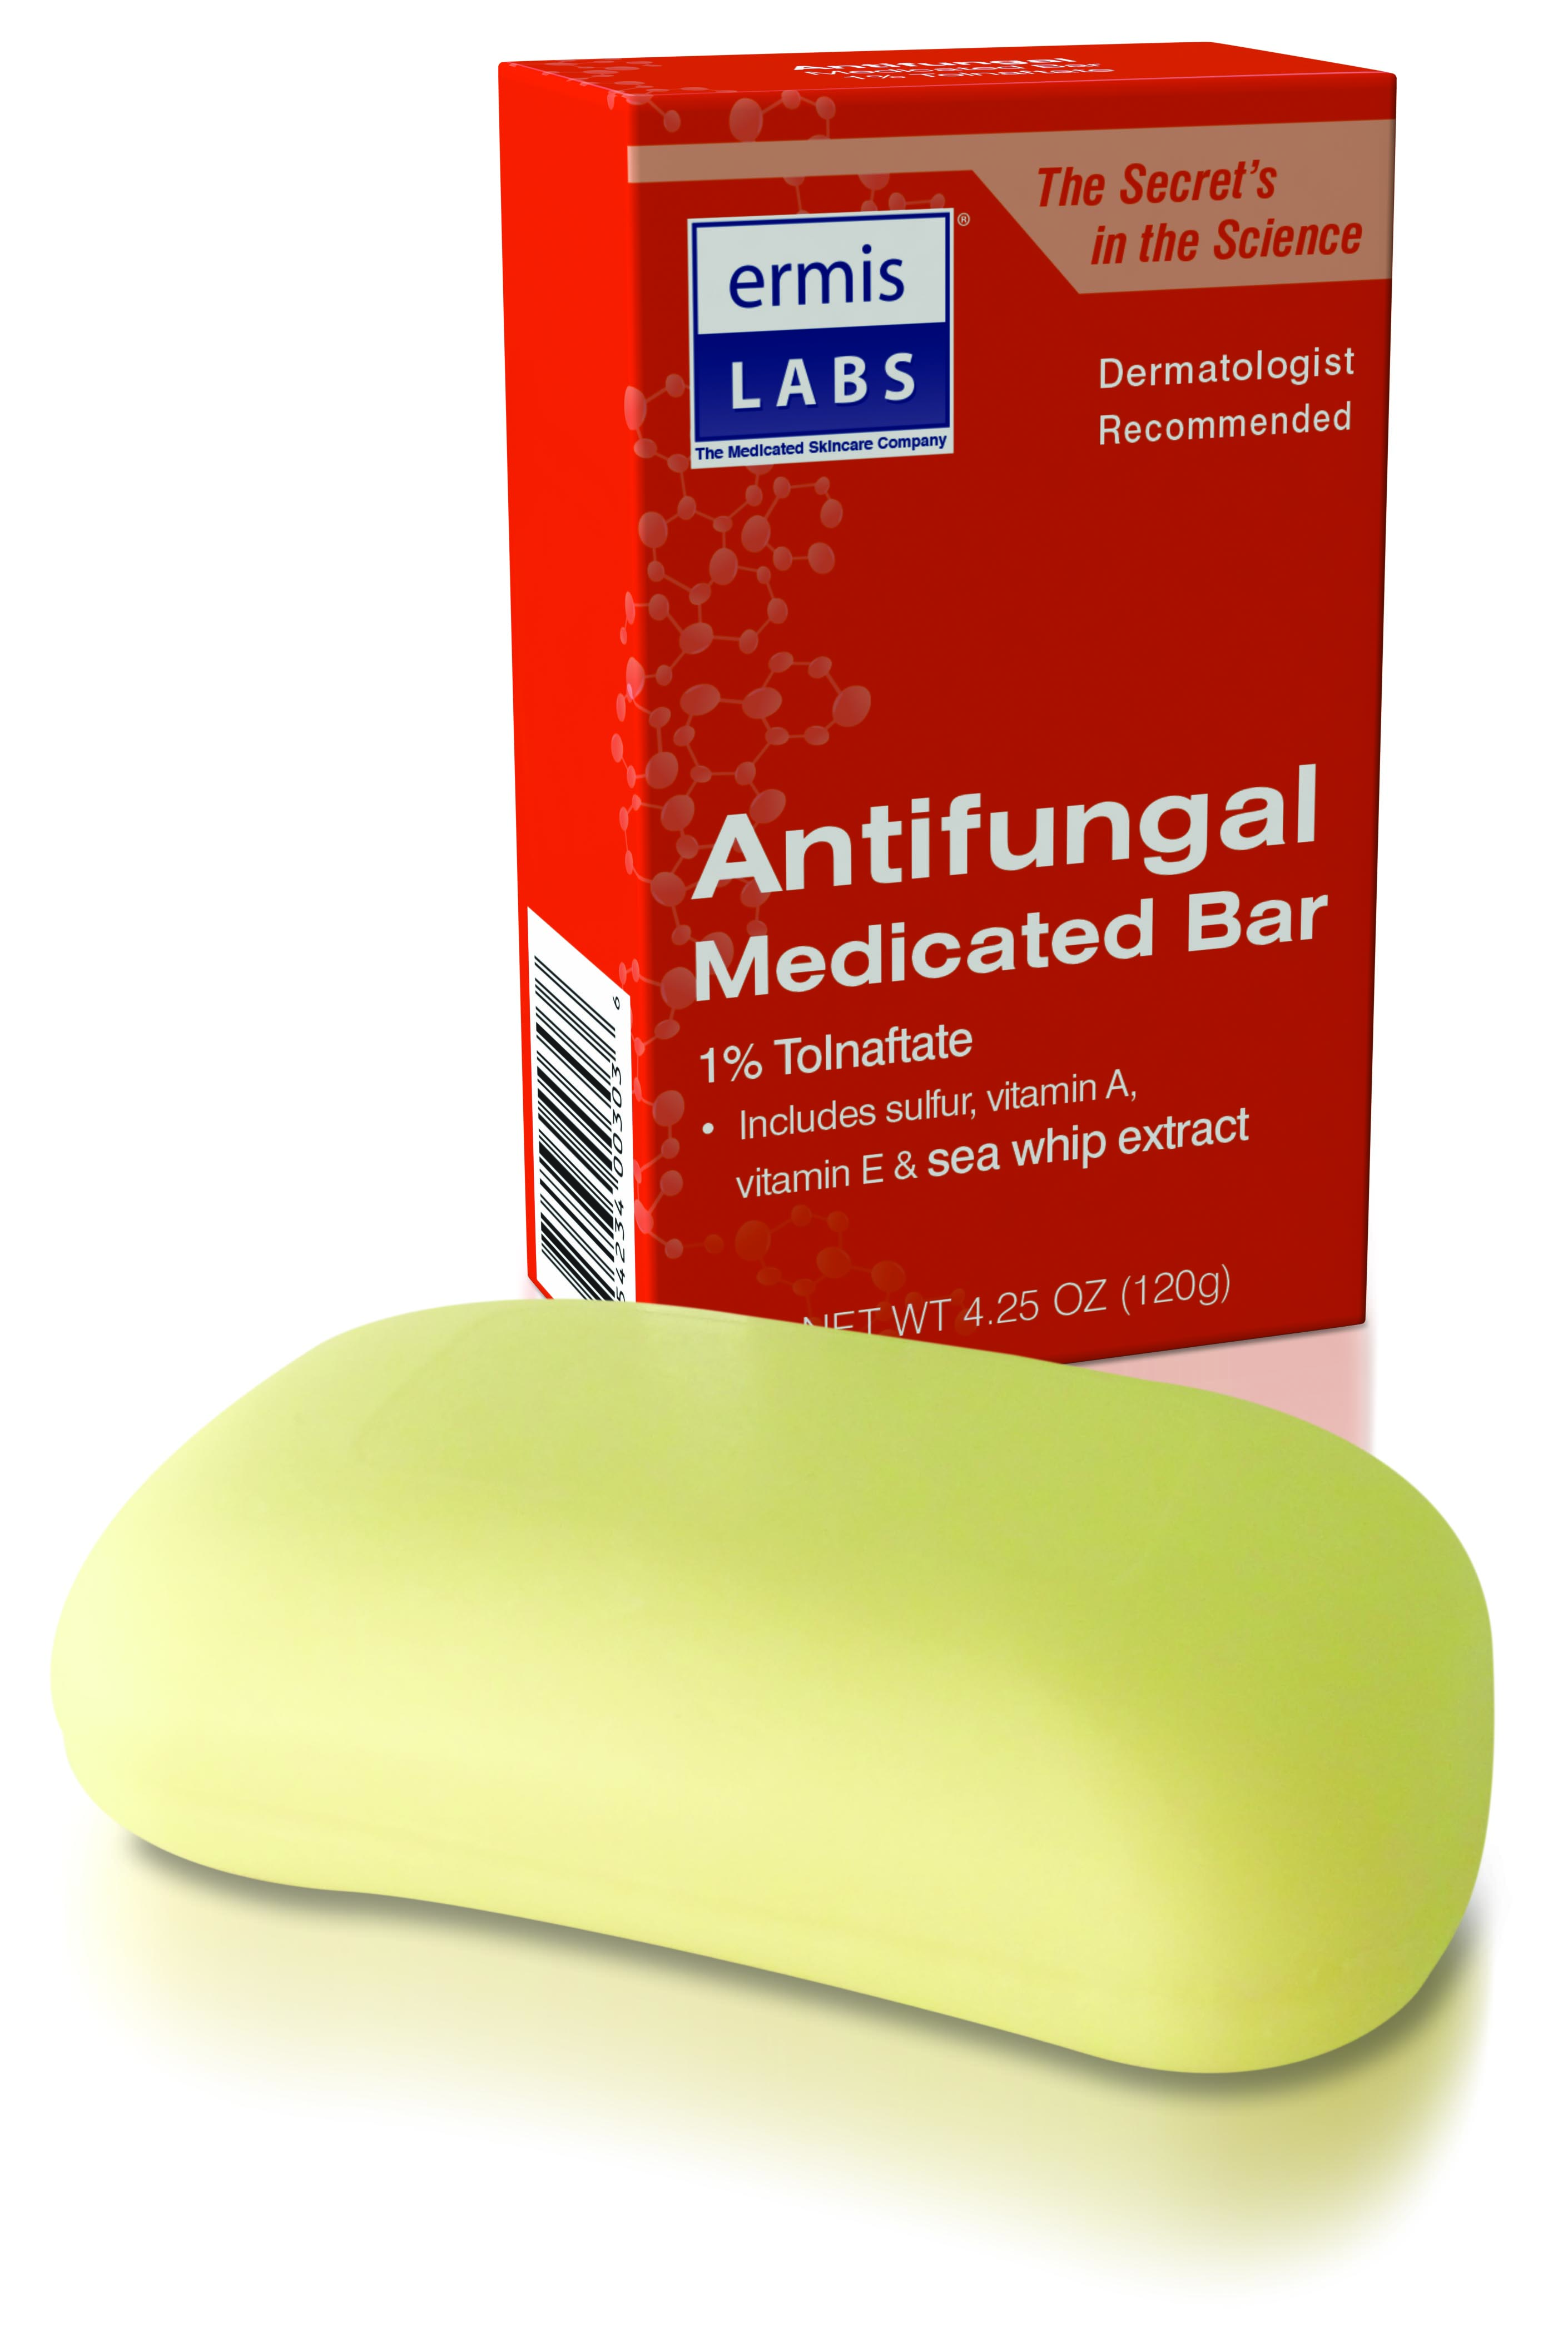 Rulemaking History for OTC Topical Antifungal Drug Products